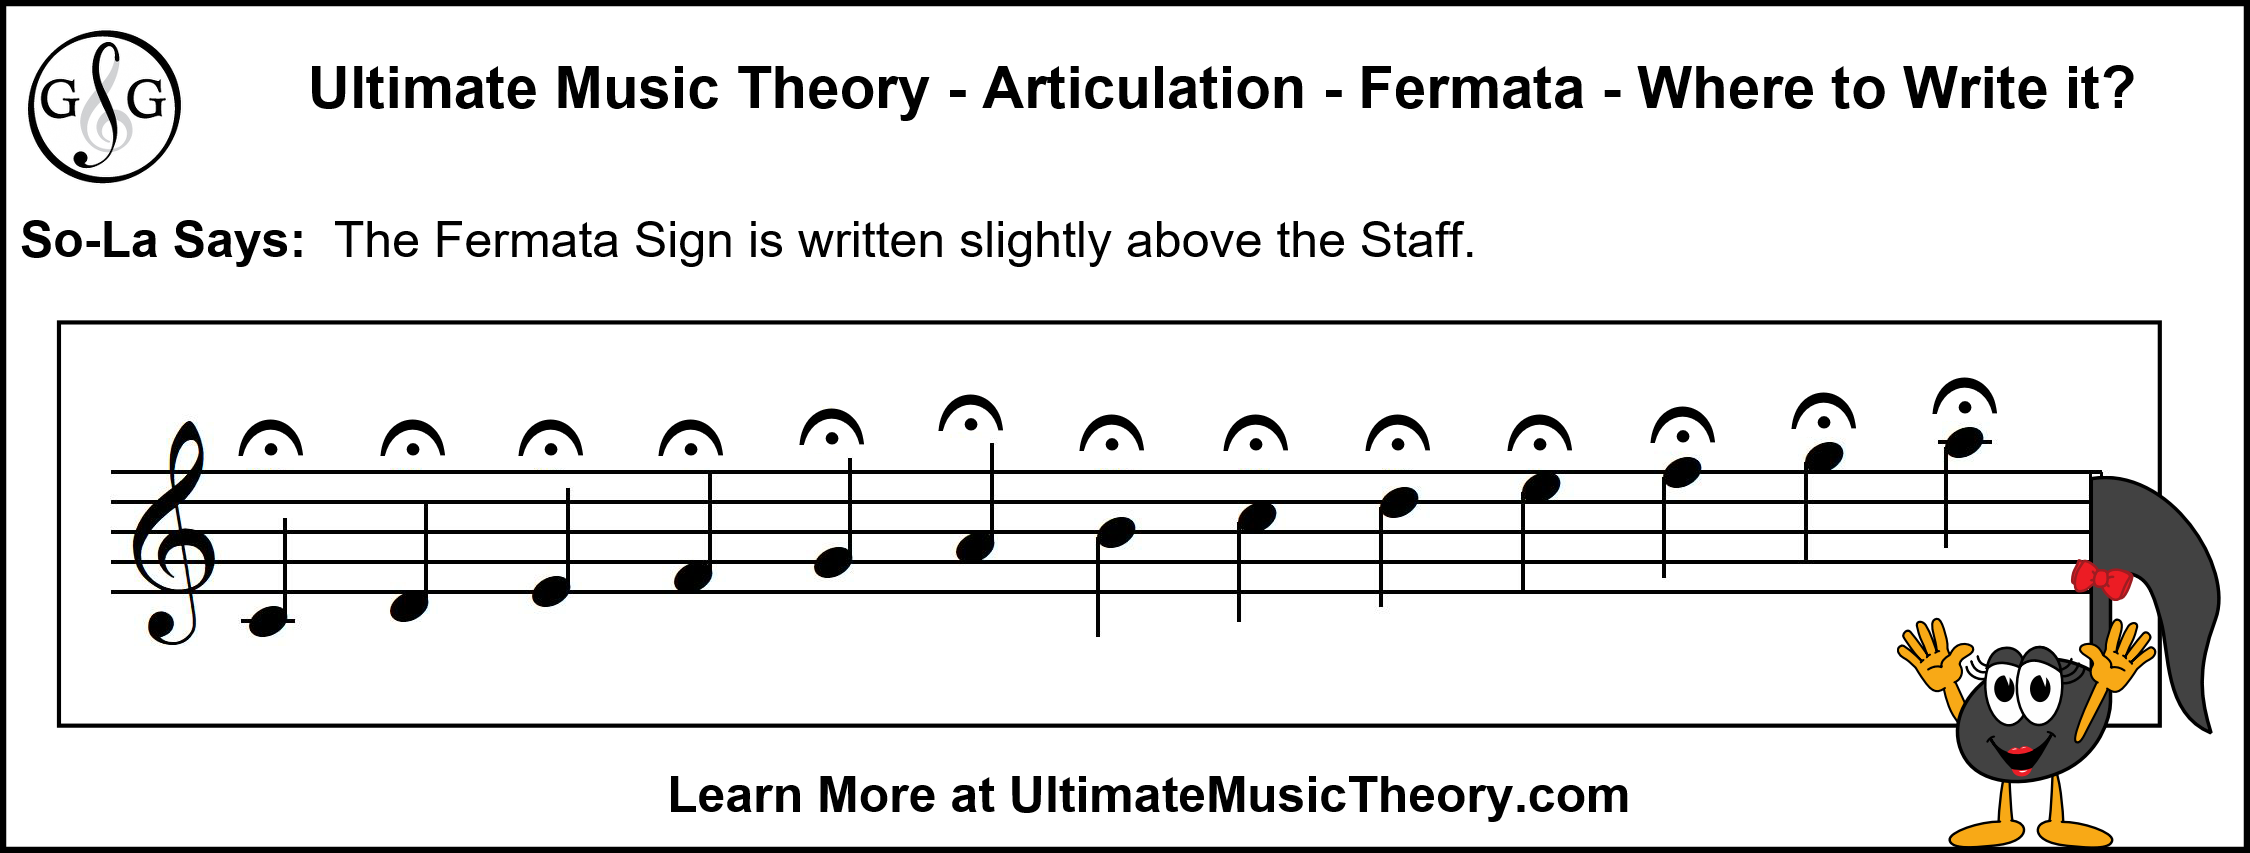 UMT - Articulation - Fermata - Where to write it